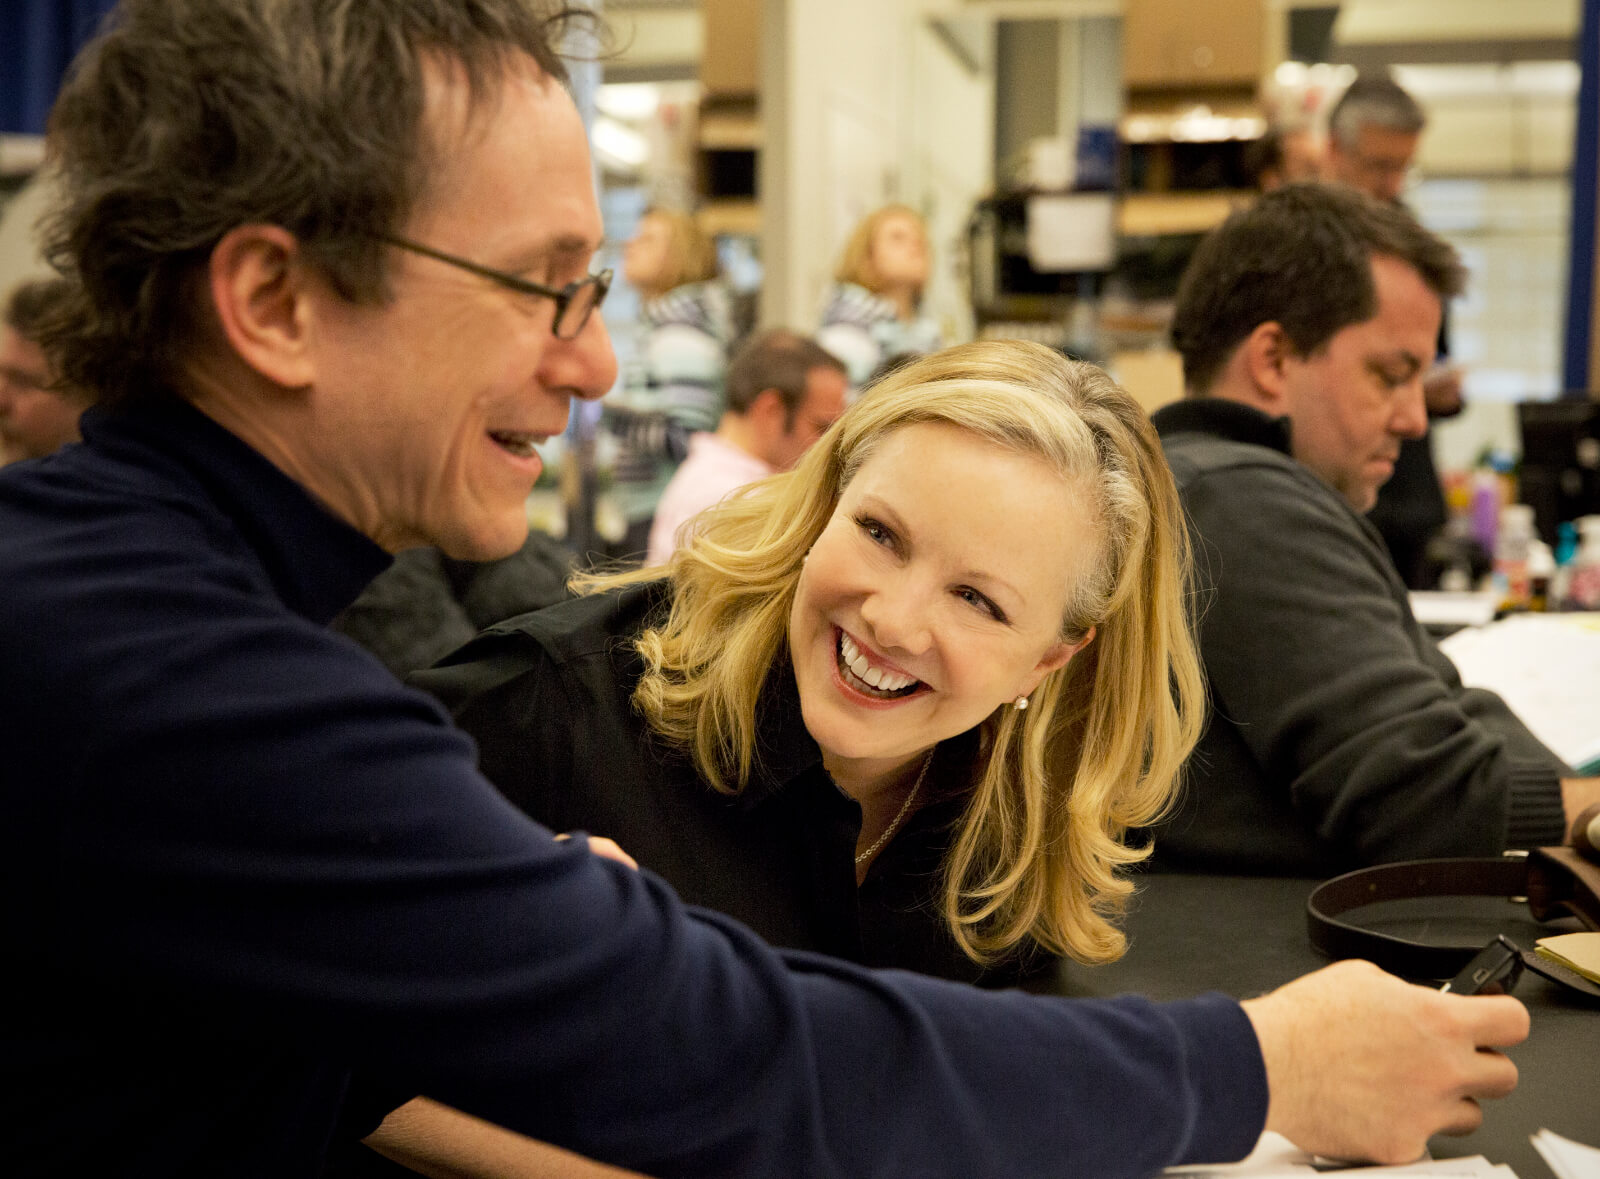 Susan Stroman and Orchestrator Larry Hochman in rehearsal discussing instrumental choices to convey the sounds of water onstage.